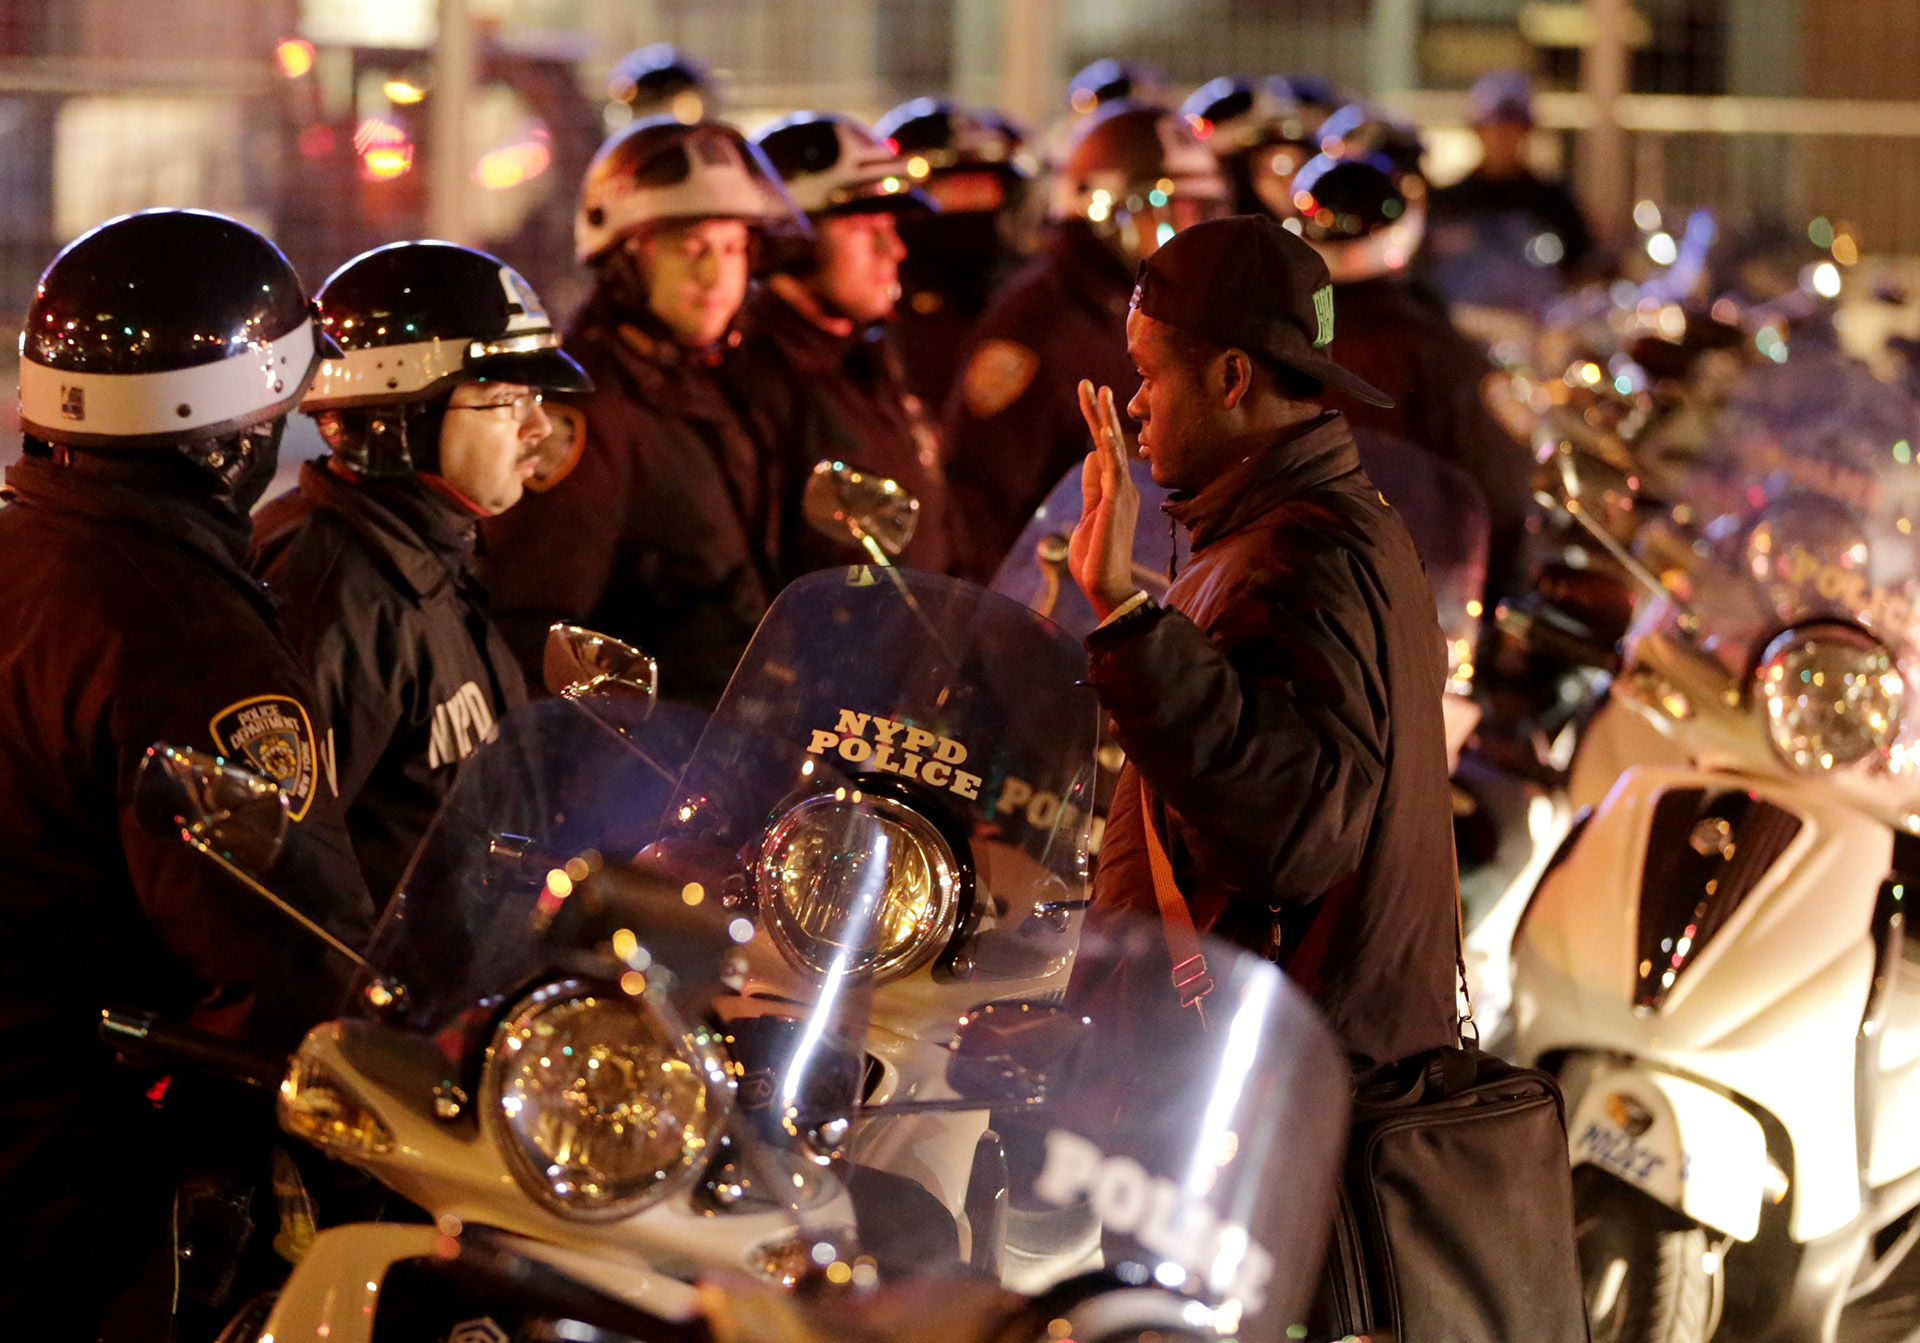 A man stands with his hands raised in front of a line of police officers during a protest after it was announced that the New York City police officer involved in the death of Eric Garner was not indicted, Wednesday, Dec. 3, 2014, in New York. (AP Photo/Julio Cortez)